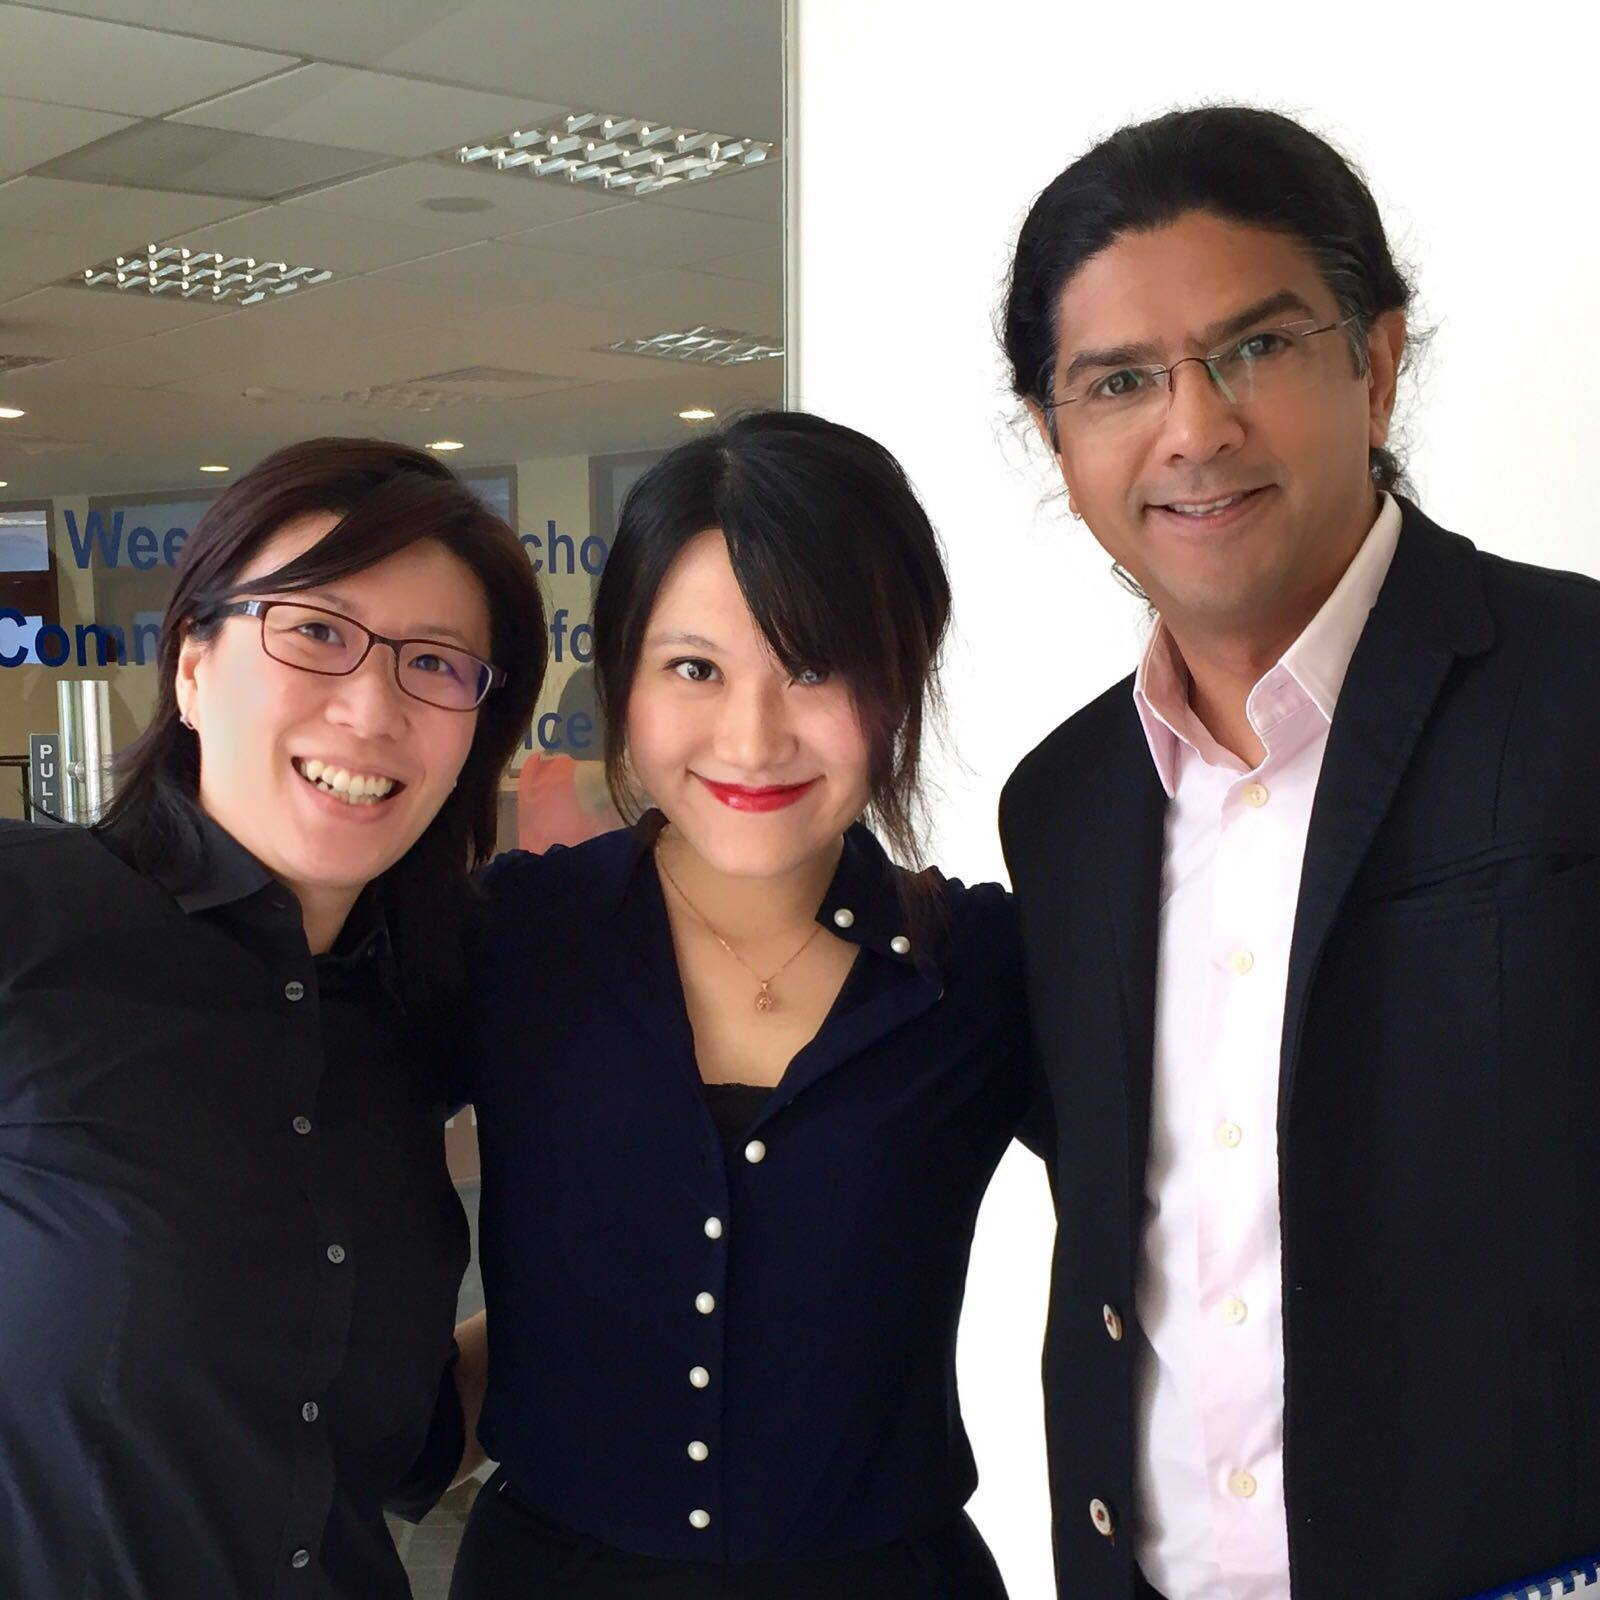 migrant workers singapore thesis Singapore, 4 november 2015 (wednesday) – a study by researchers at the singapore management university (smu) on the wellbeing of migrant workers in singapore has.